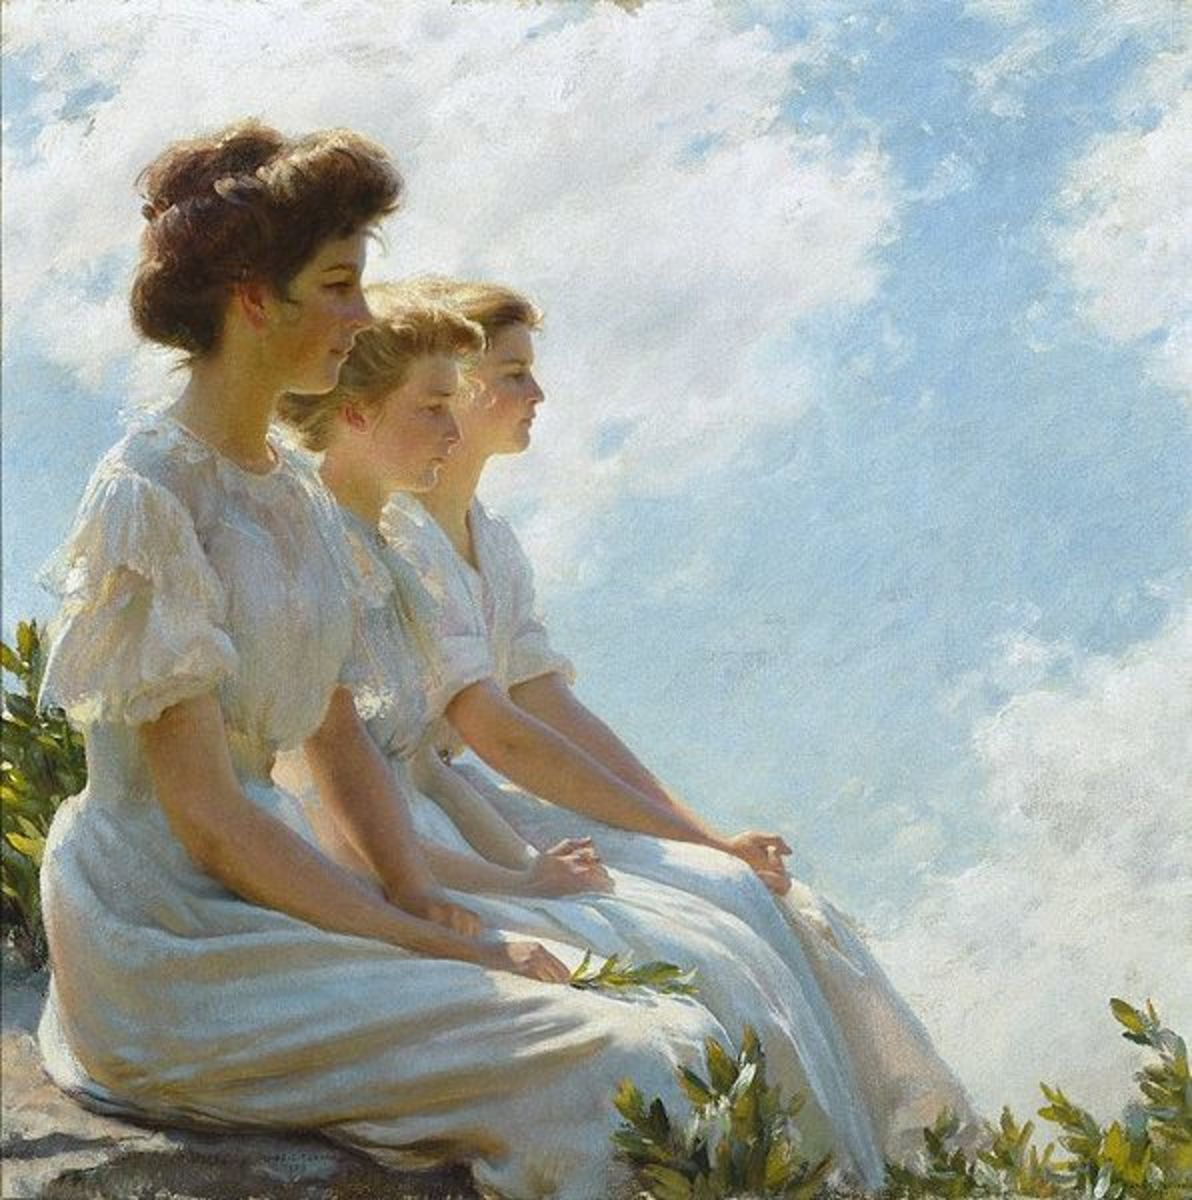 This image is of three women with their hair up, on what seems to be high bluffs.  They are overlooking something below.  Very elegant and beautiful I think!  This oil on canvas painting is located at the Brooklyn Museum. Circa 1909